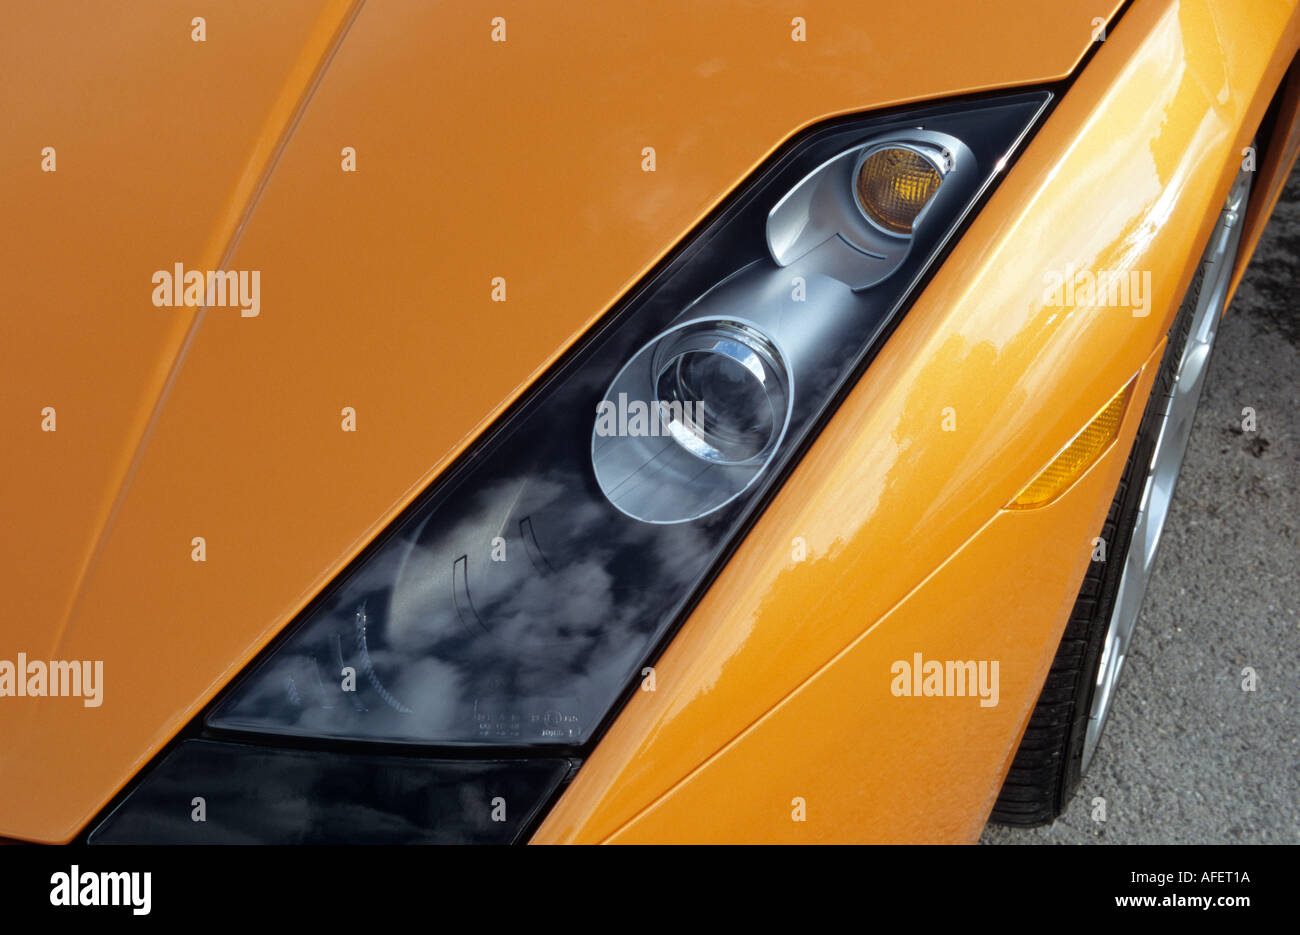 Lamborghini Gallardo Headlights Stock Photos Lamborghini Gallardo